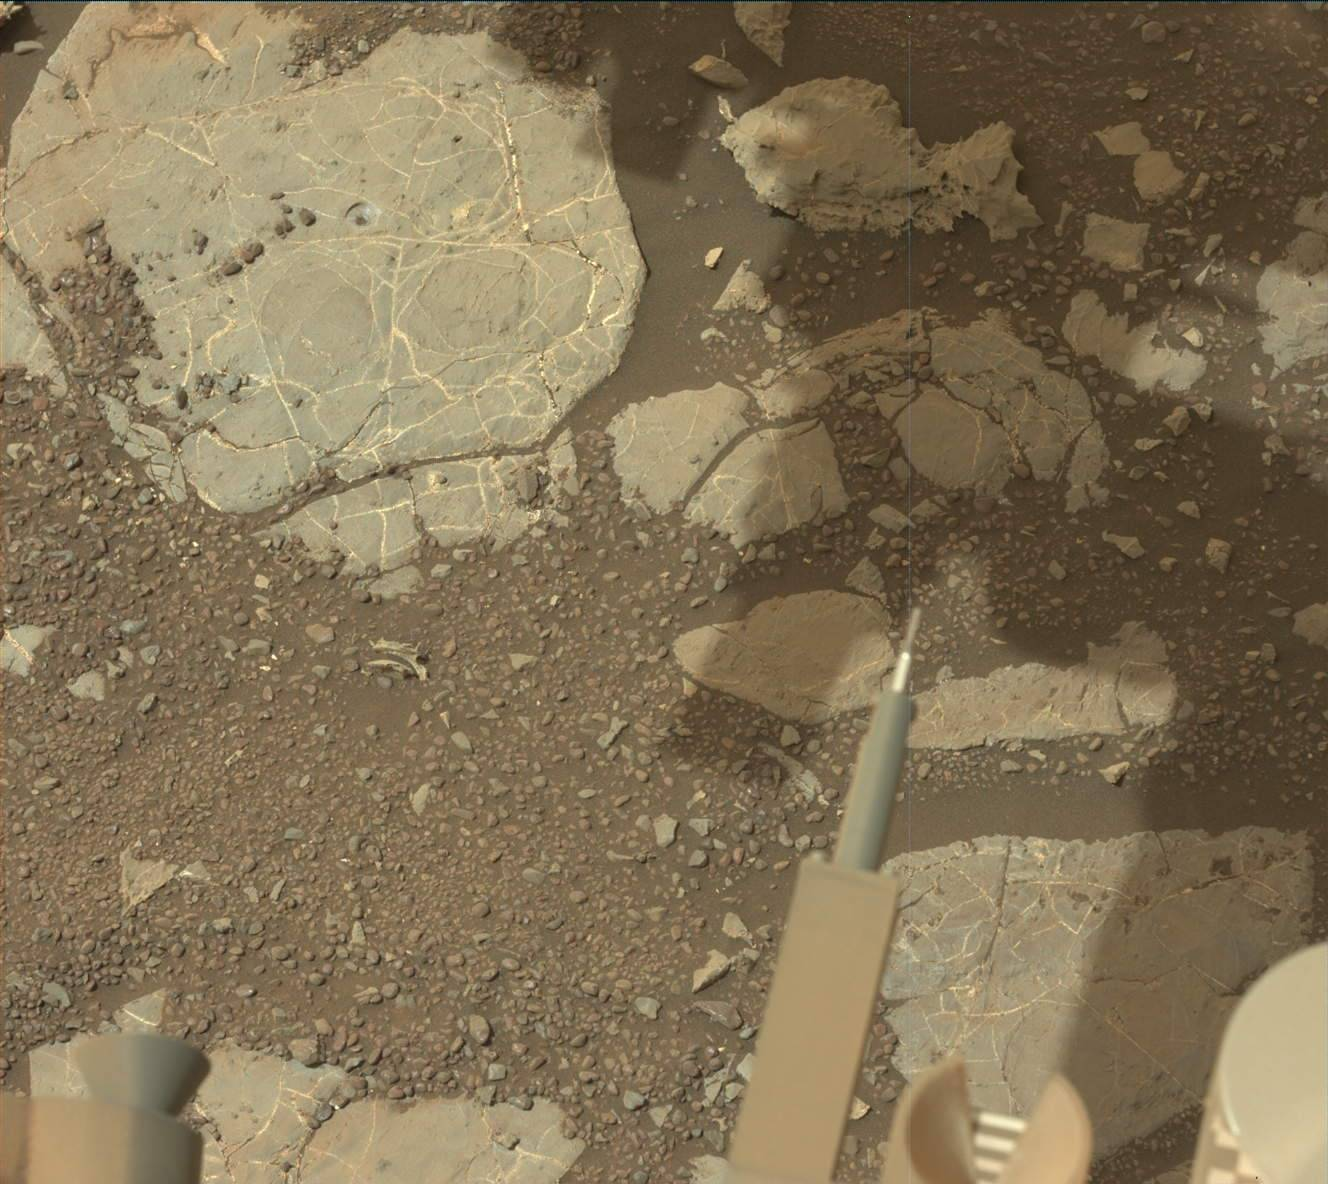 Sol 2217: A BOO-tiful Halloween on Mars - Curiosity's Return to Contact Science